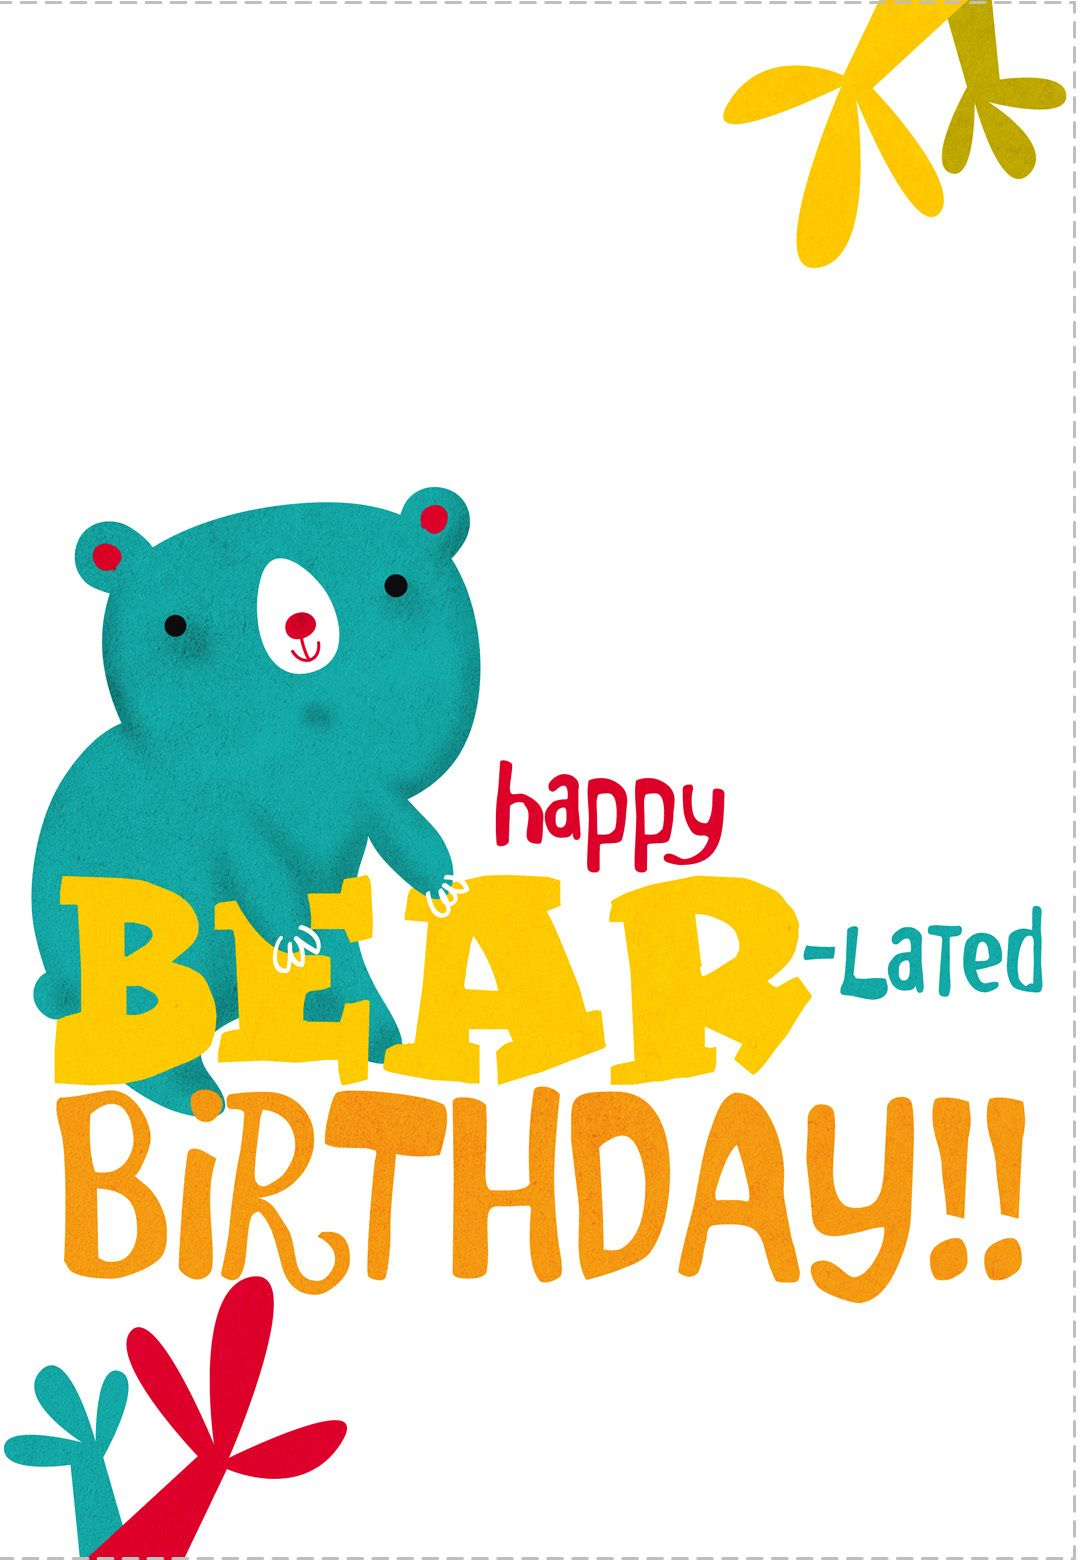 Free printable bear lated birthday greeting card cutee free printable bear lated birthday greeting card kristyandbryce Image collections